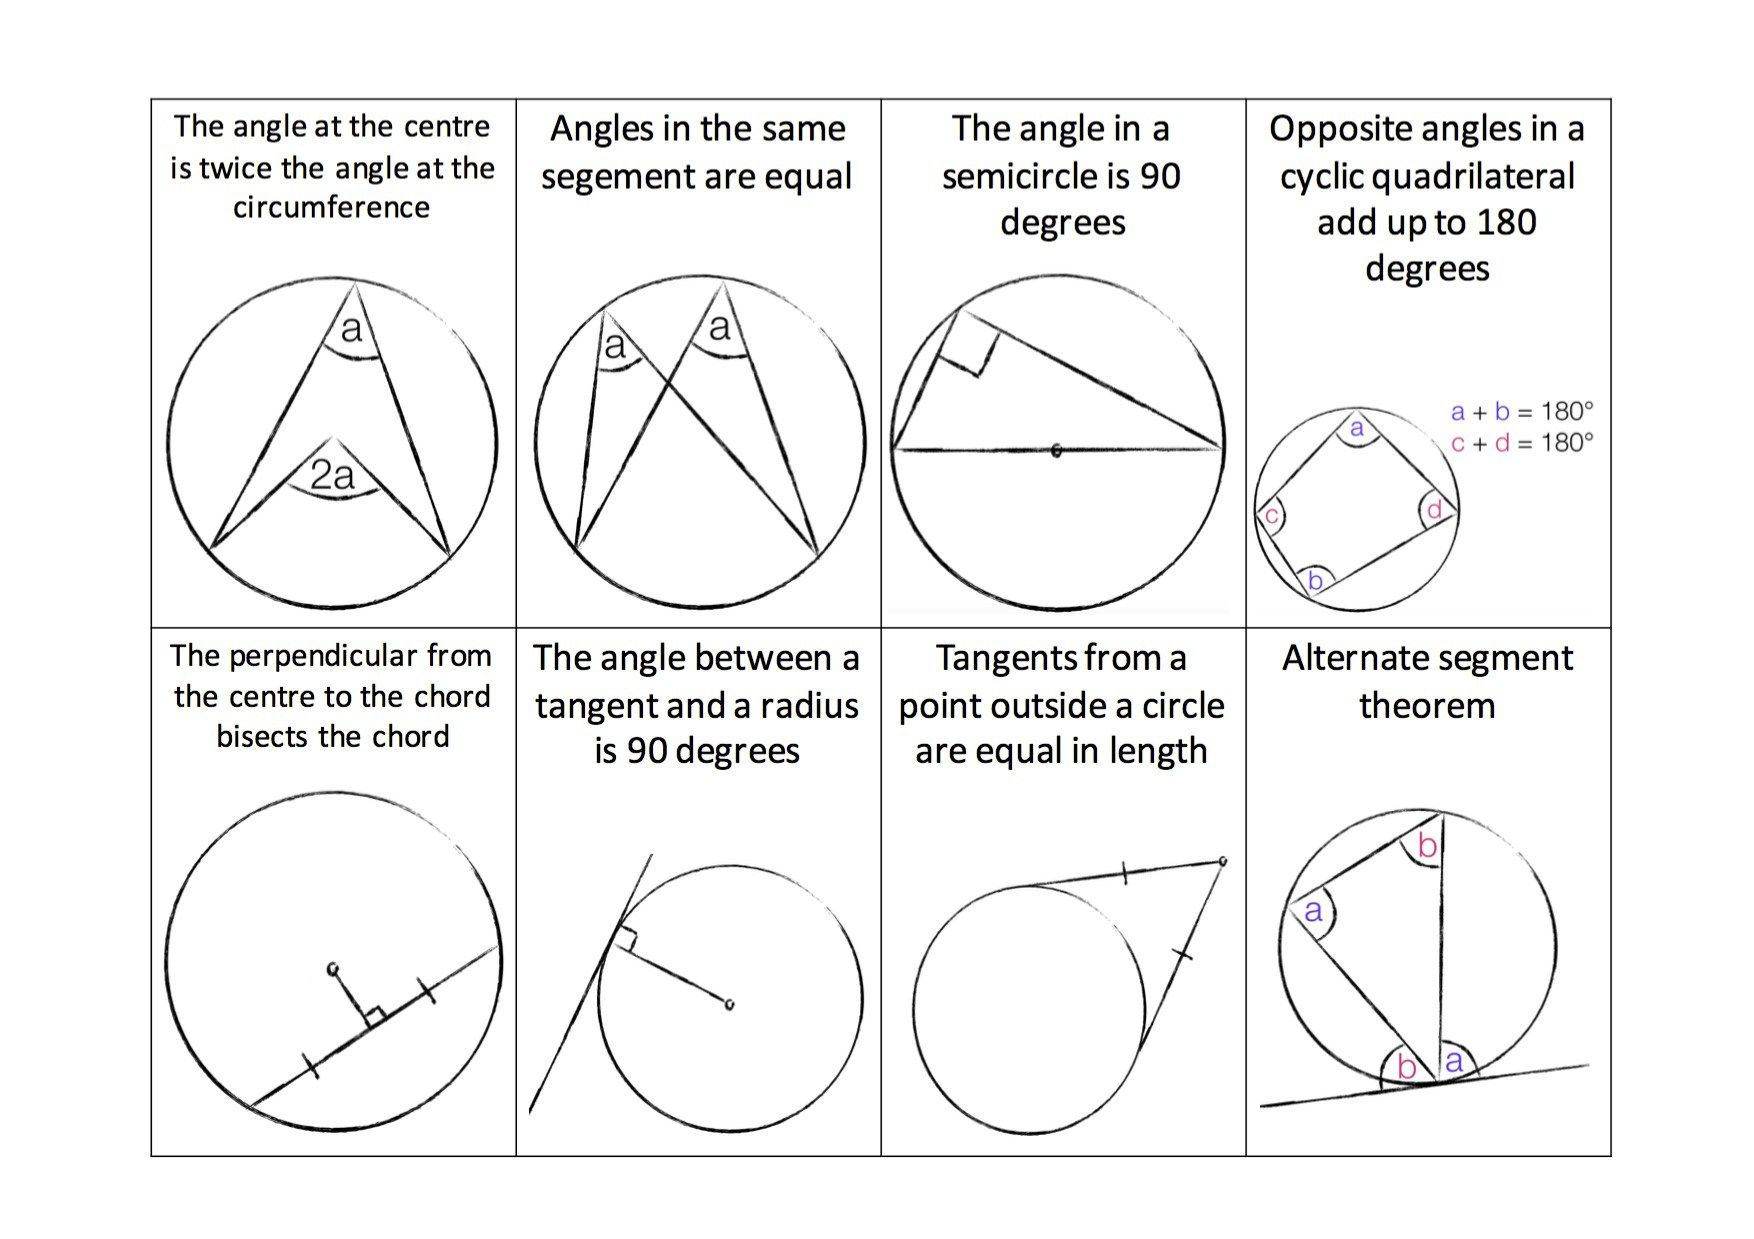 I Want My Year 11s To Put Some Practice In To Learn The Circle Theorems Word For Word To Make It A Bit More Interest Circle Theorems Circle Math Teaching Math